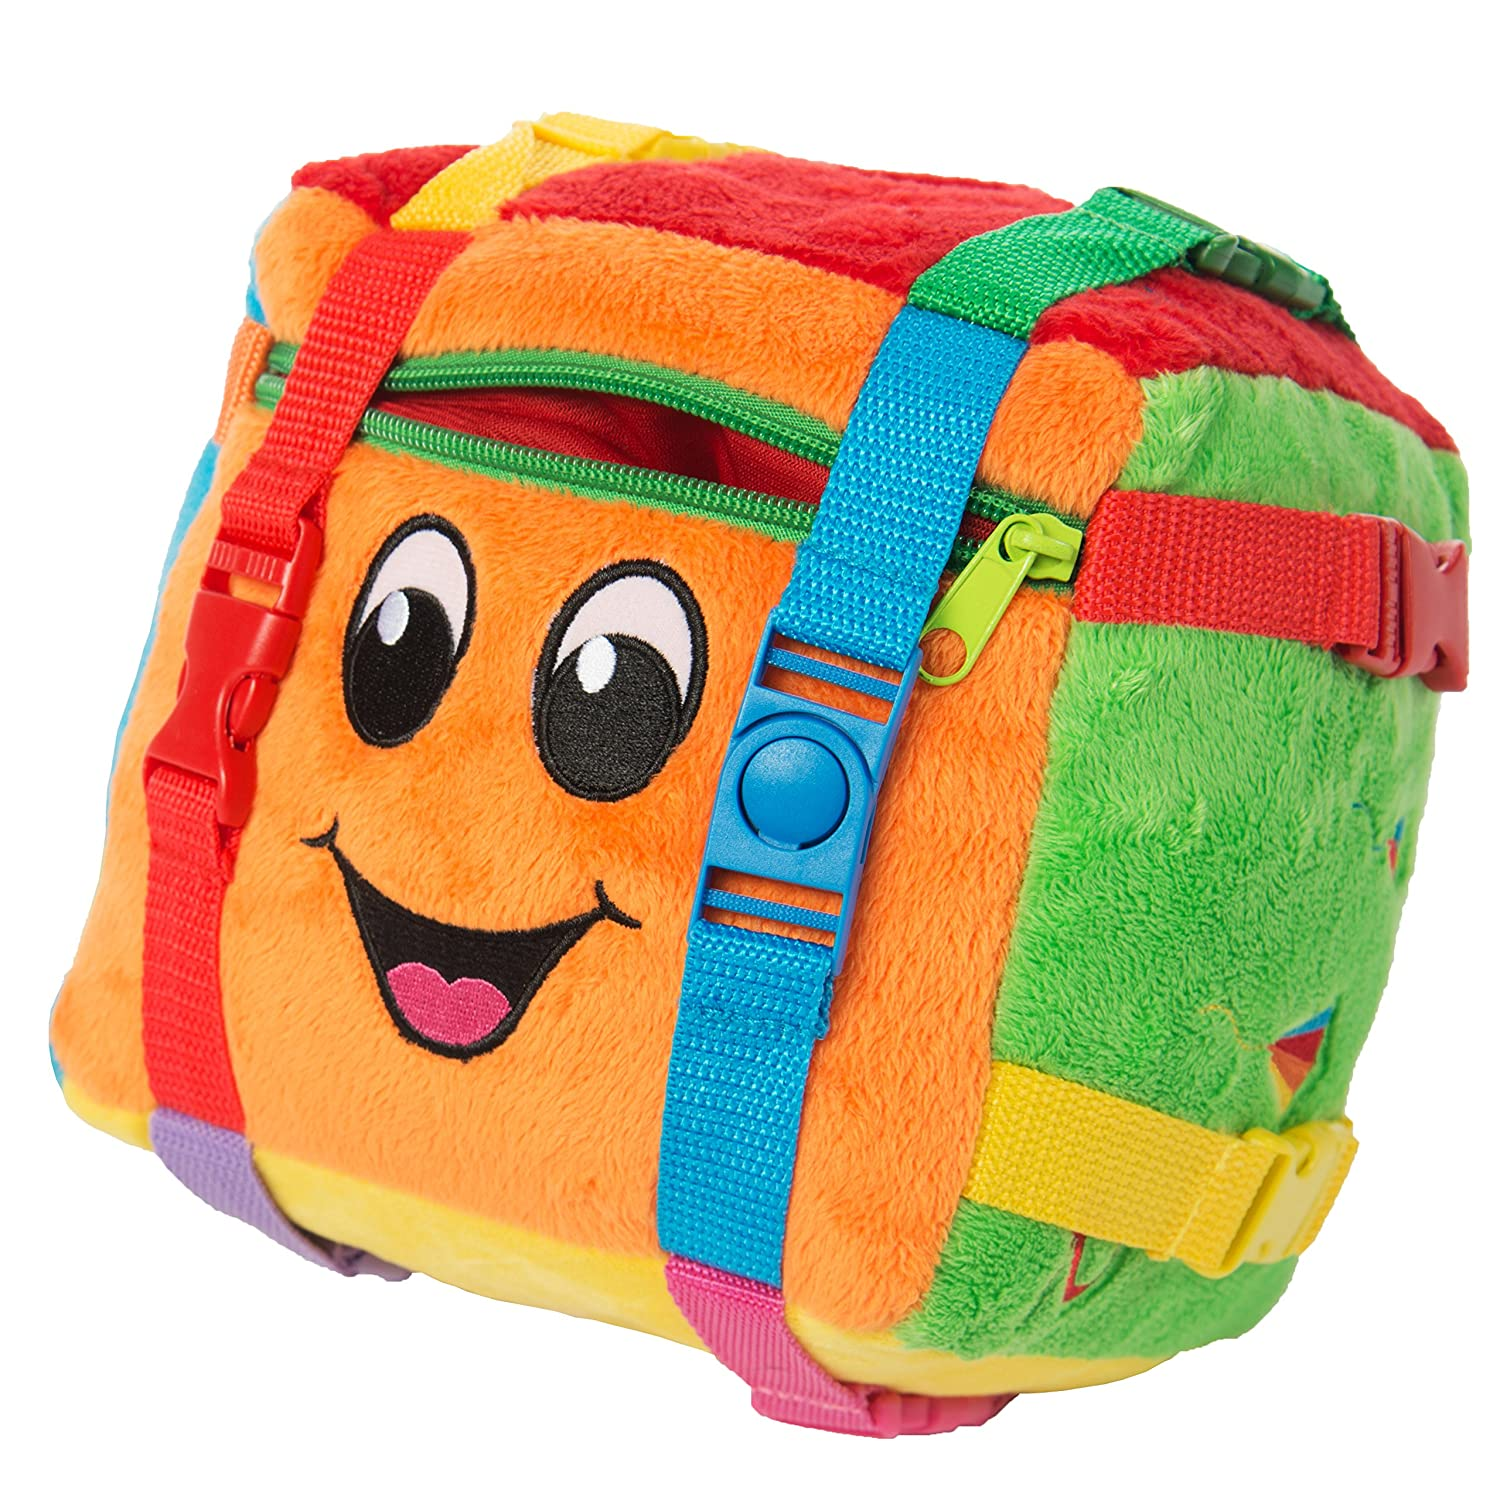 BUCKLE TOY Bingo Activity Cube - Toddler Early Learning Basic Life Skills Children's Travel Plush Buckle Toy Inc